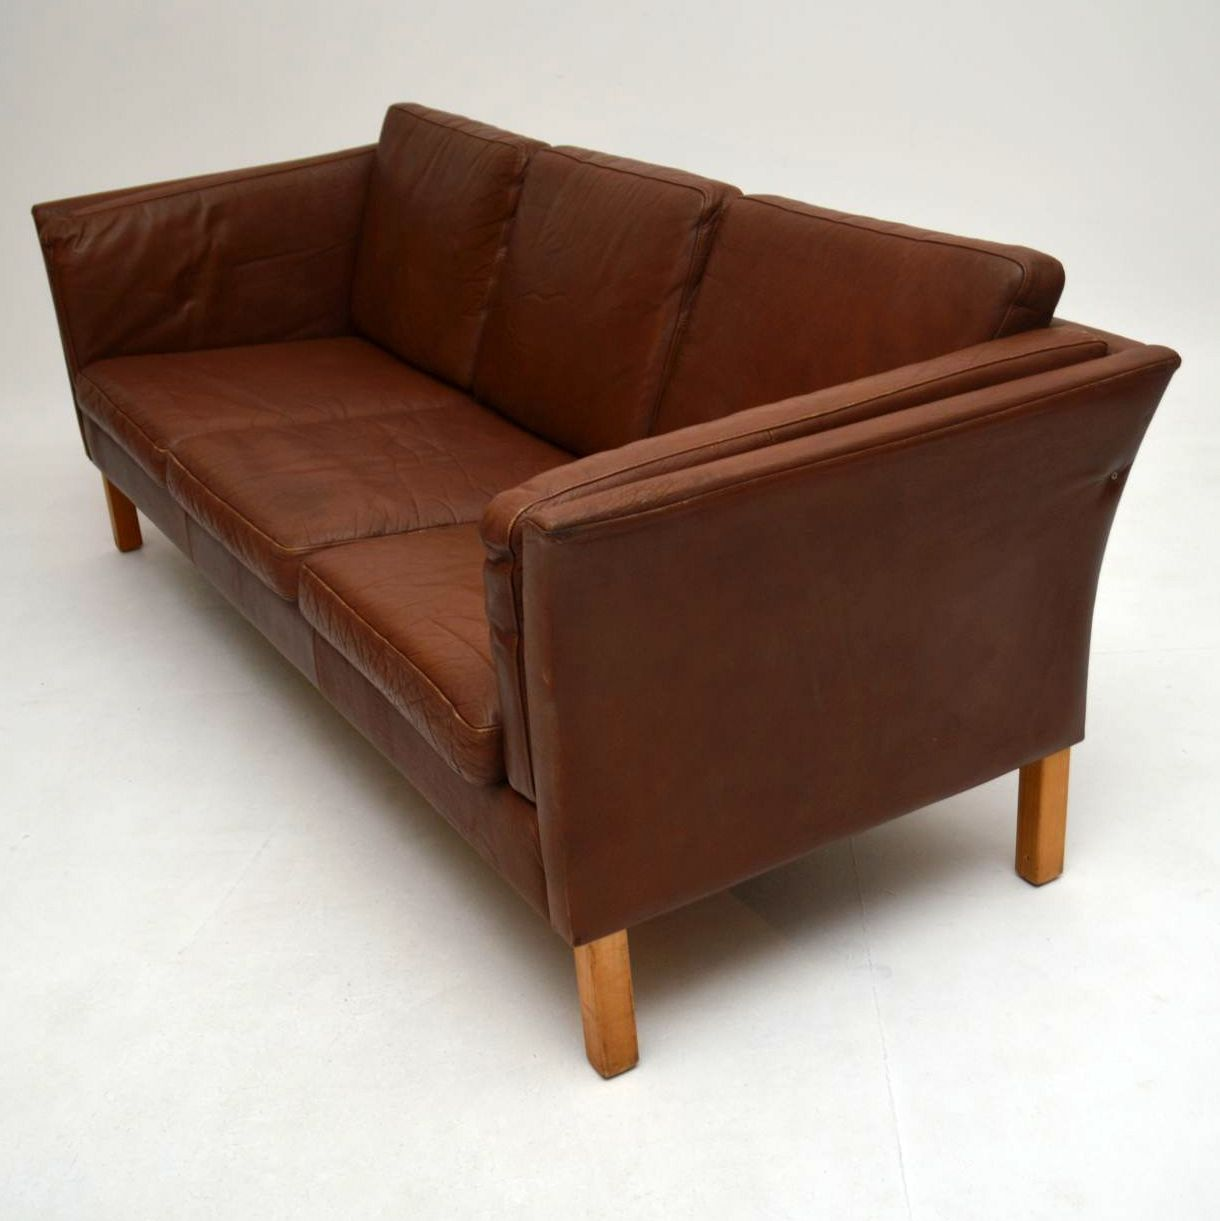 Scandinavian Furniture Sale Danish Retro Leather Sofa Vintage 1960s Interior